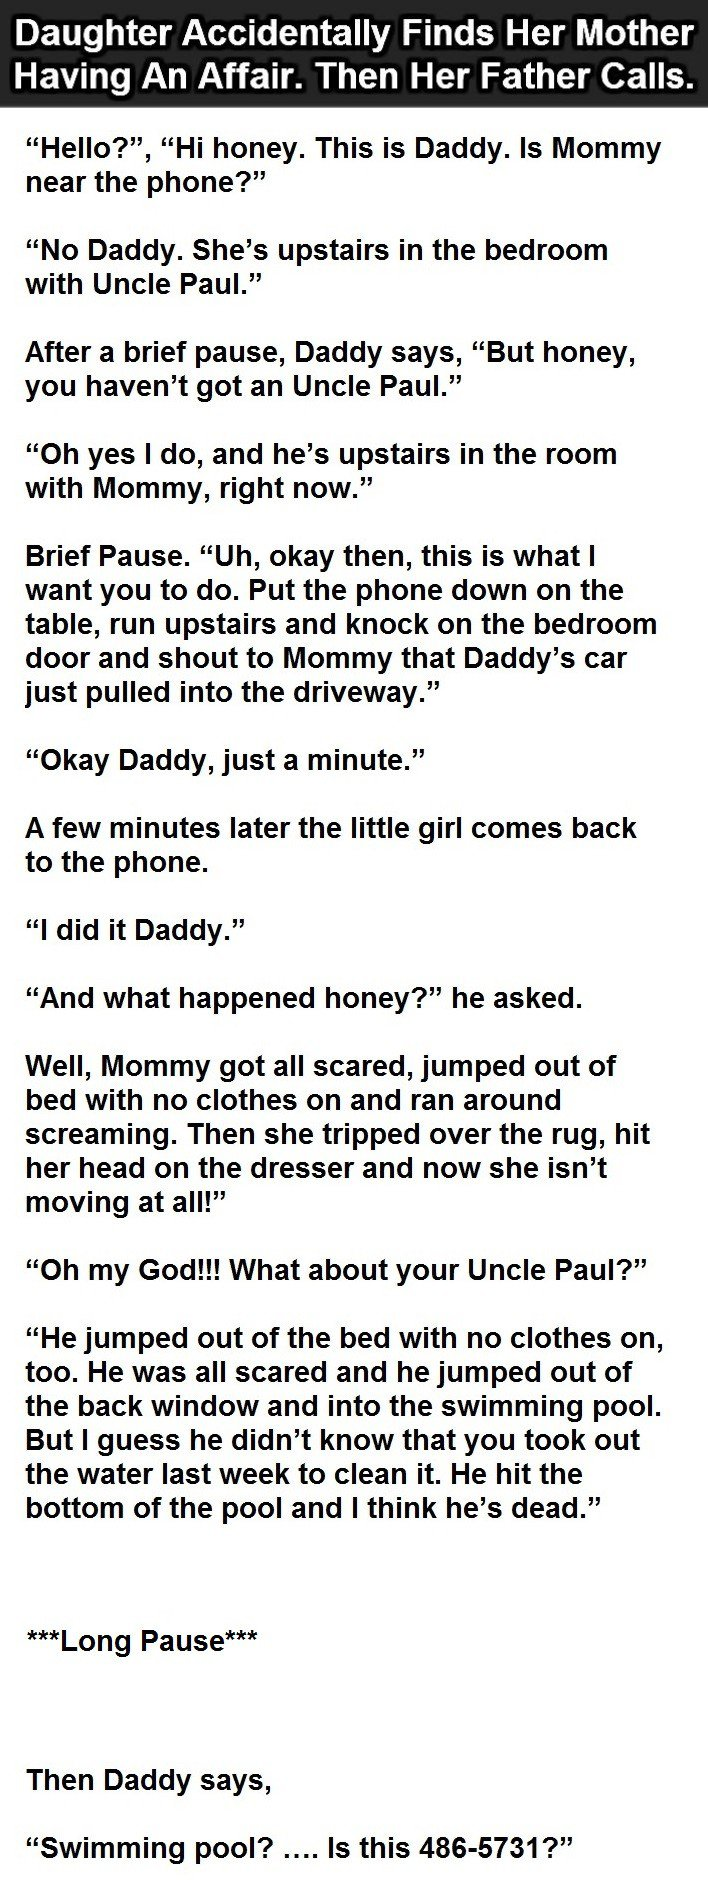 Daughter Accidentally Finds Her Mother Having An Affair. This Is Priceless.